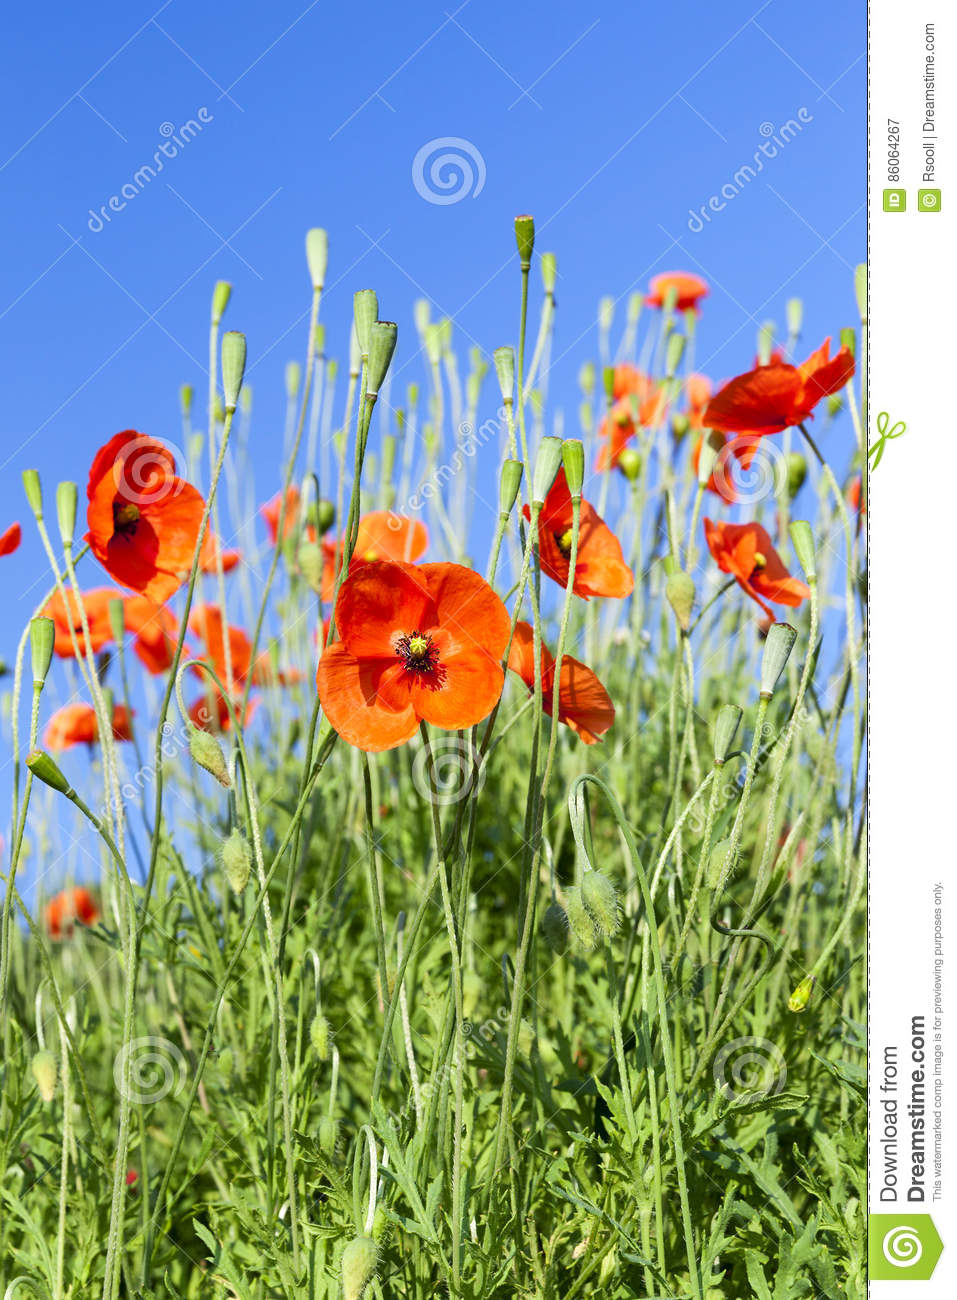 Red poppy in the field stock image image of petal nonurban 86064267 download red poppy in the field stock image image of petal nonurban 86064267 mightylinksfo